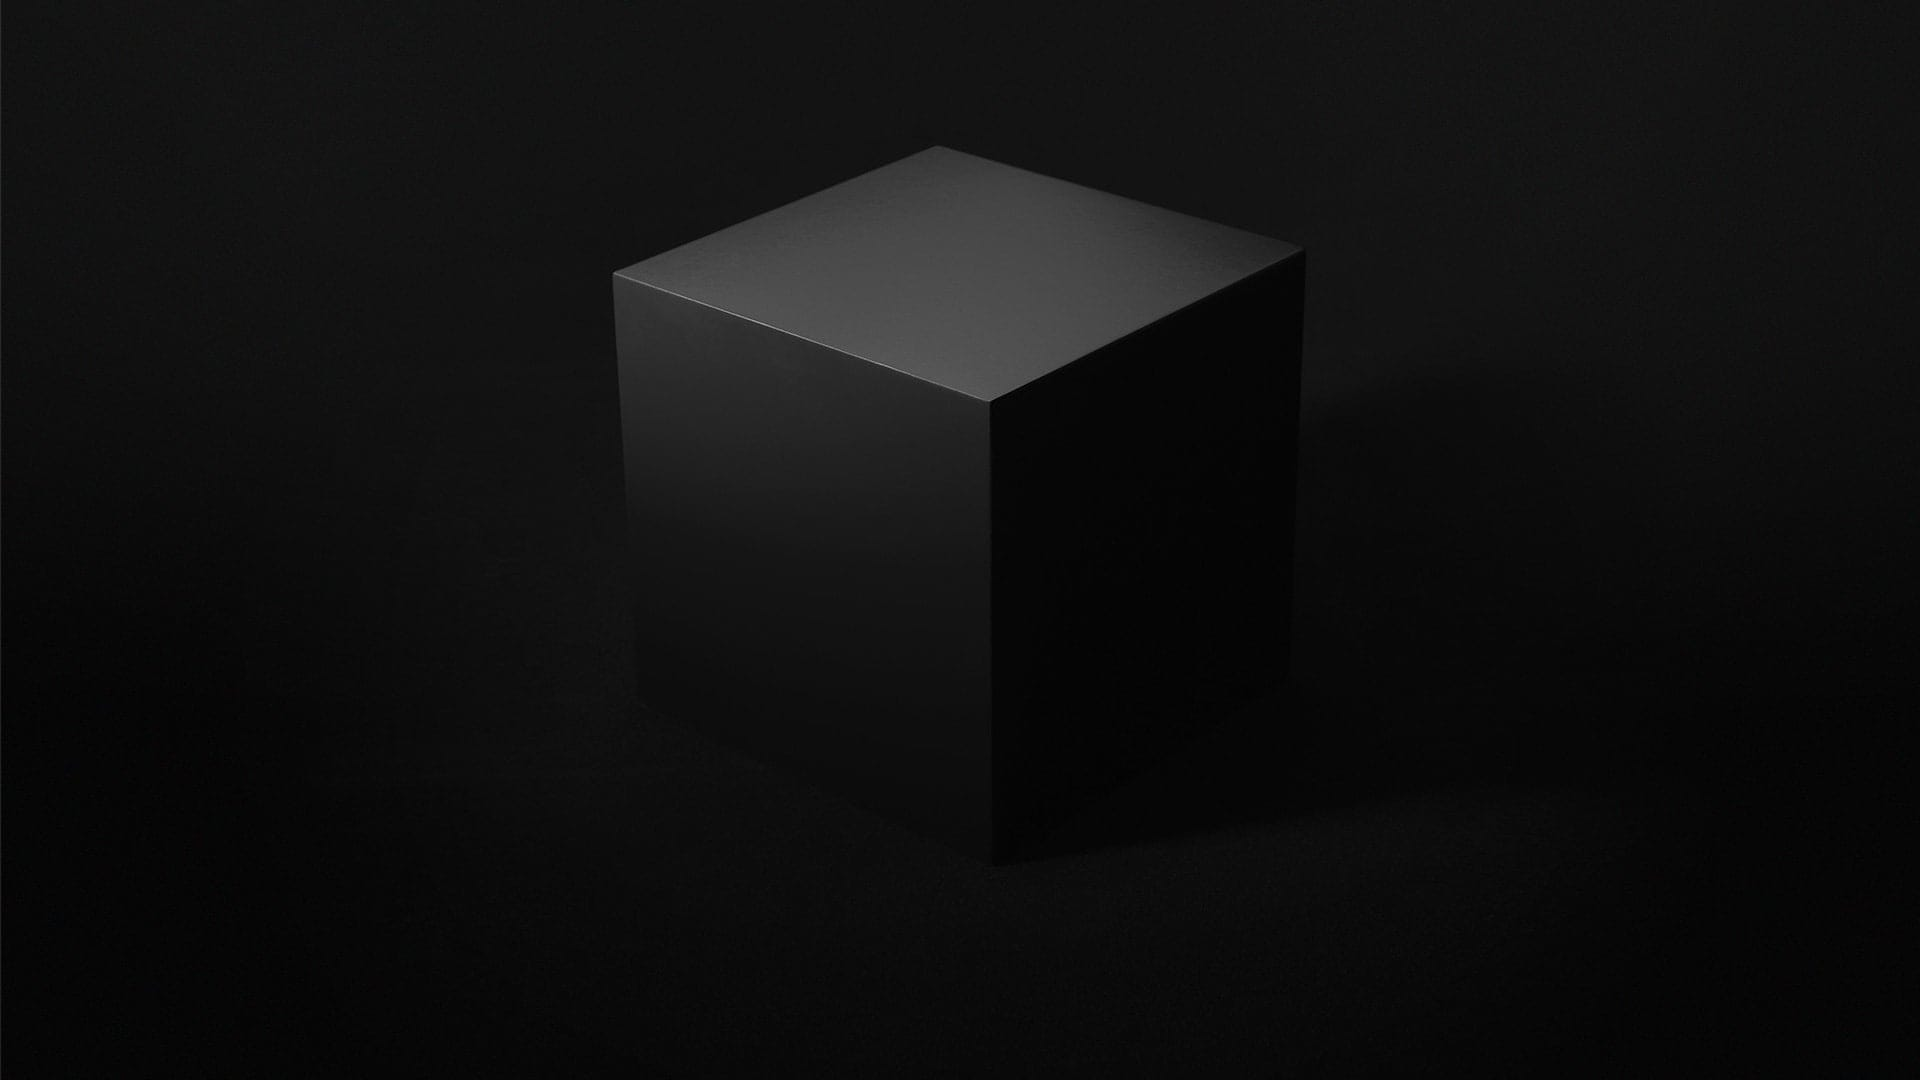 A box with light shining through the edges